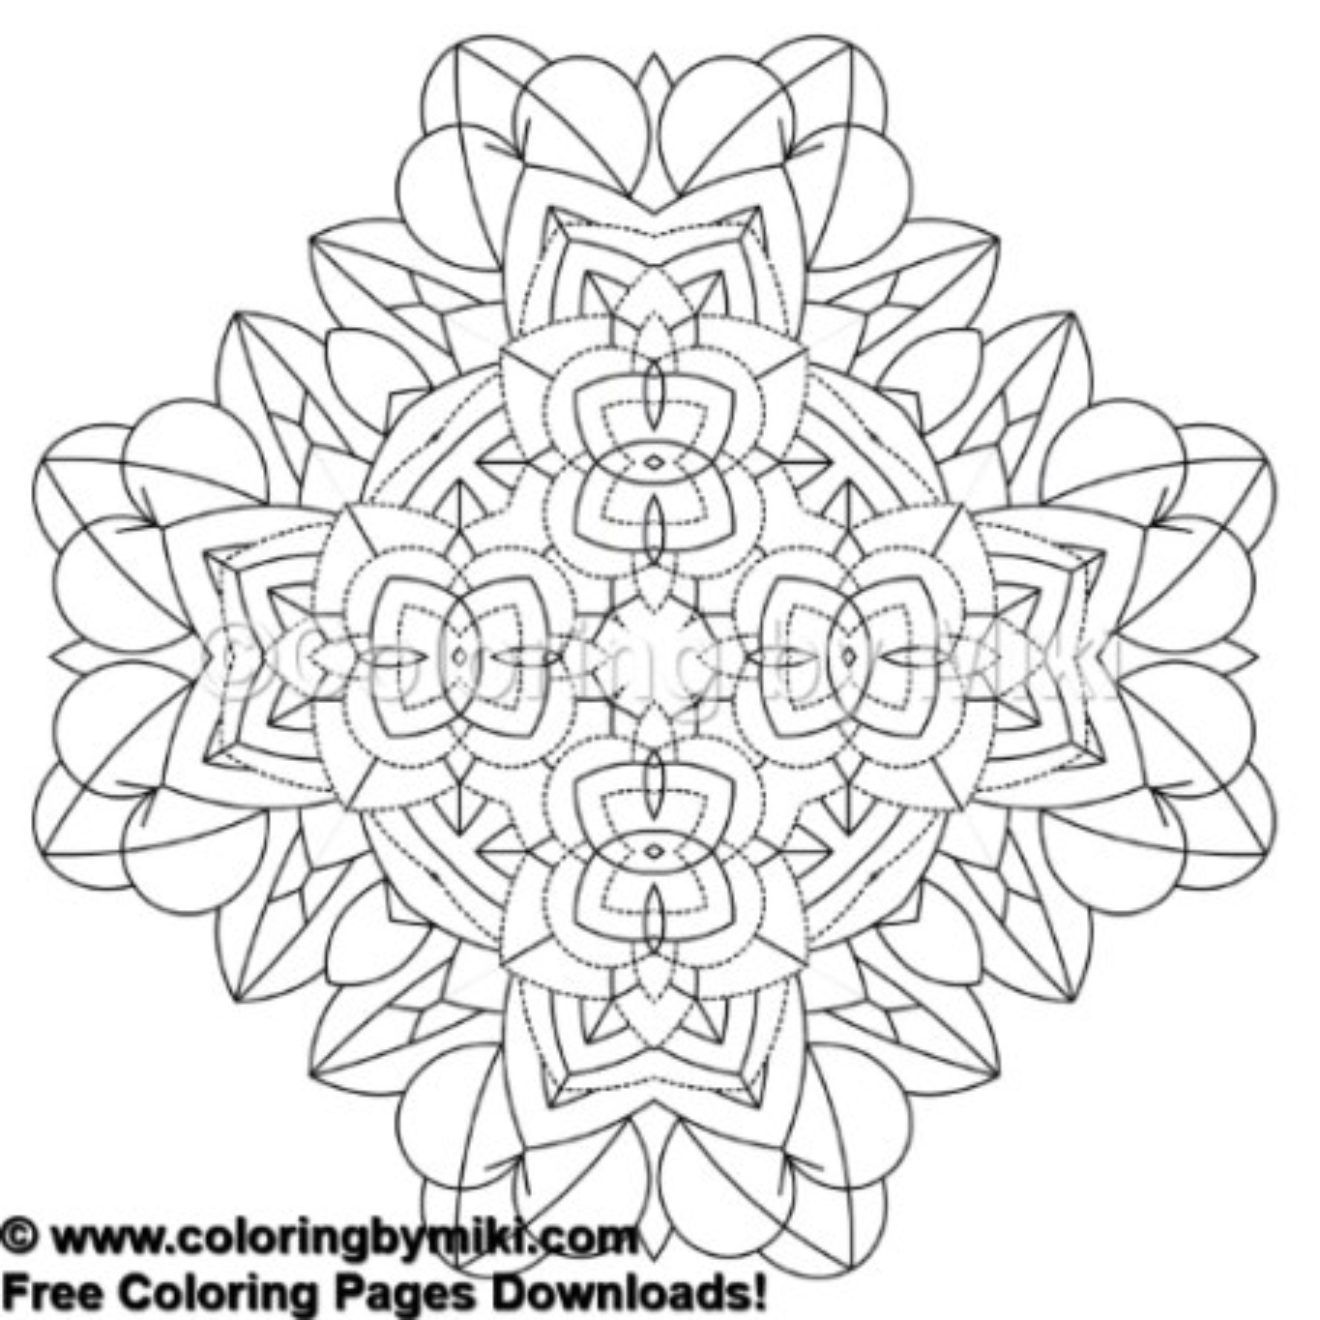 Kaleidoscope Sacred Geometry Coloring Page 620 #